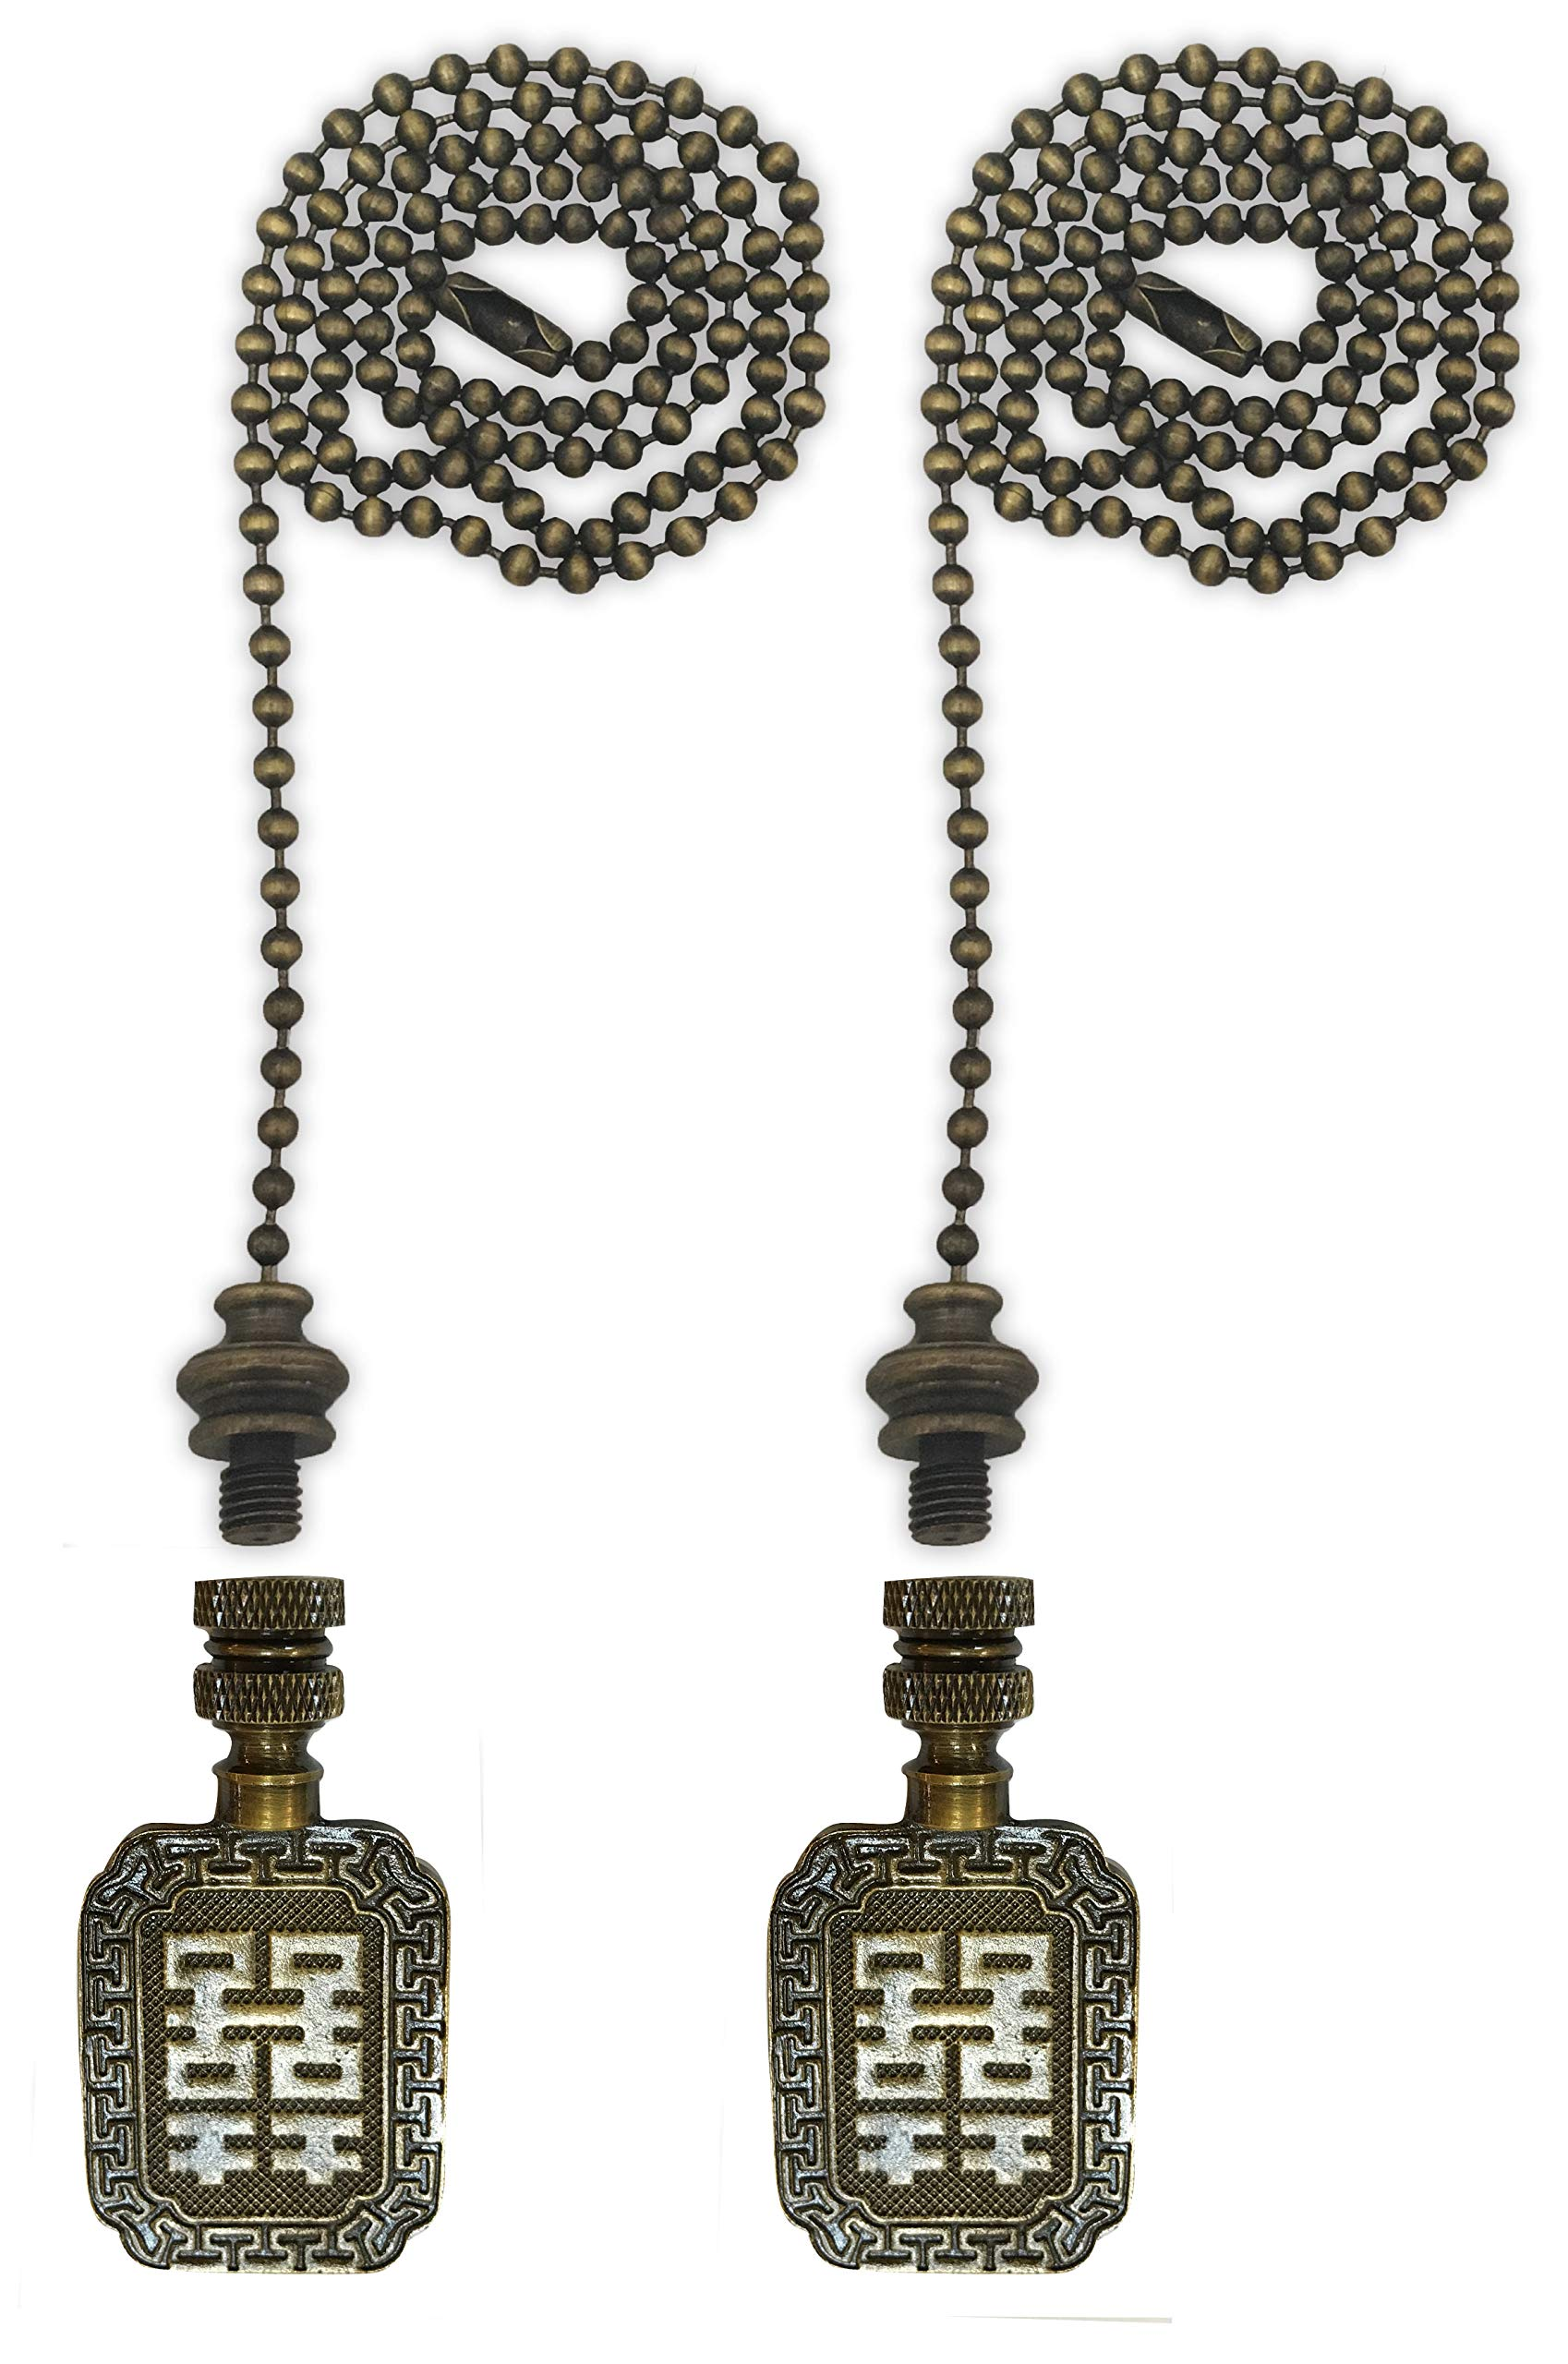 Royal Designs Fan Pull Chain with Chinese Joy Symbol Finial - Antique Brass - Set of 2